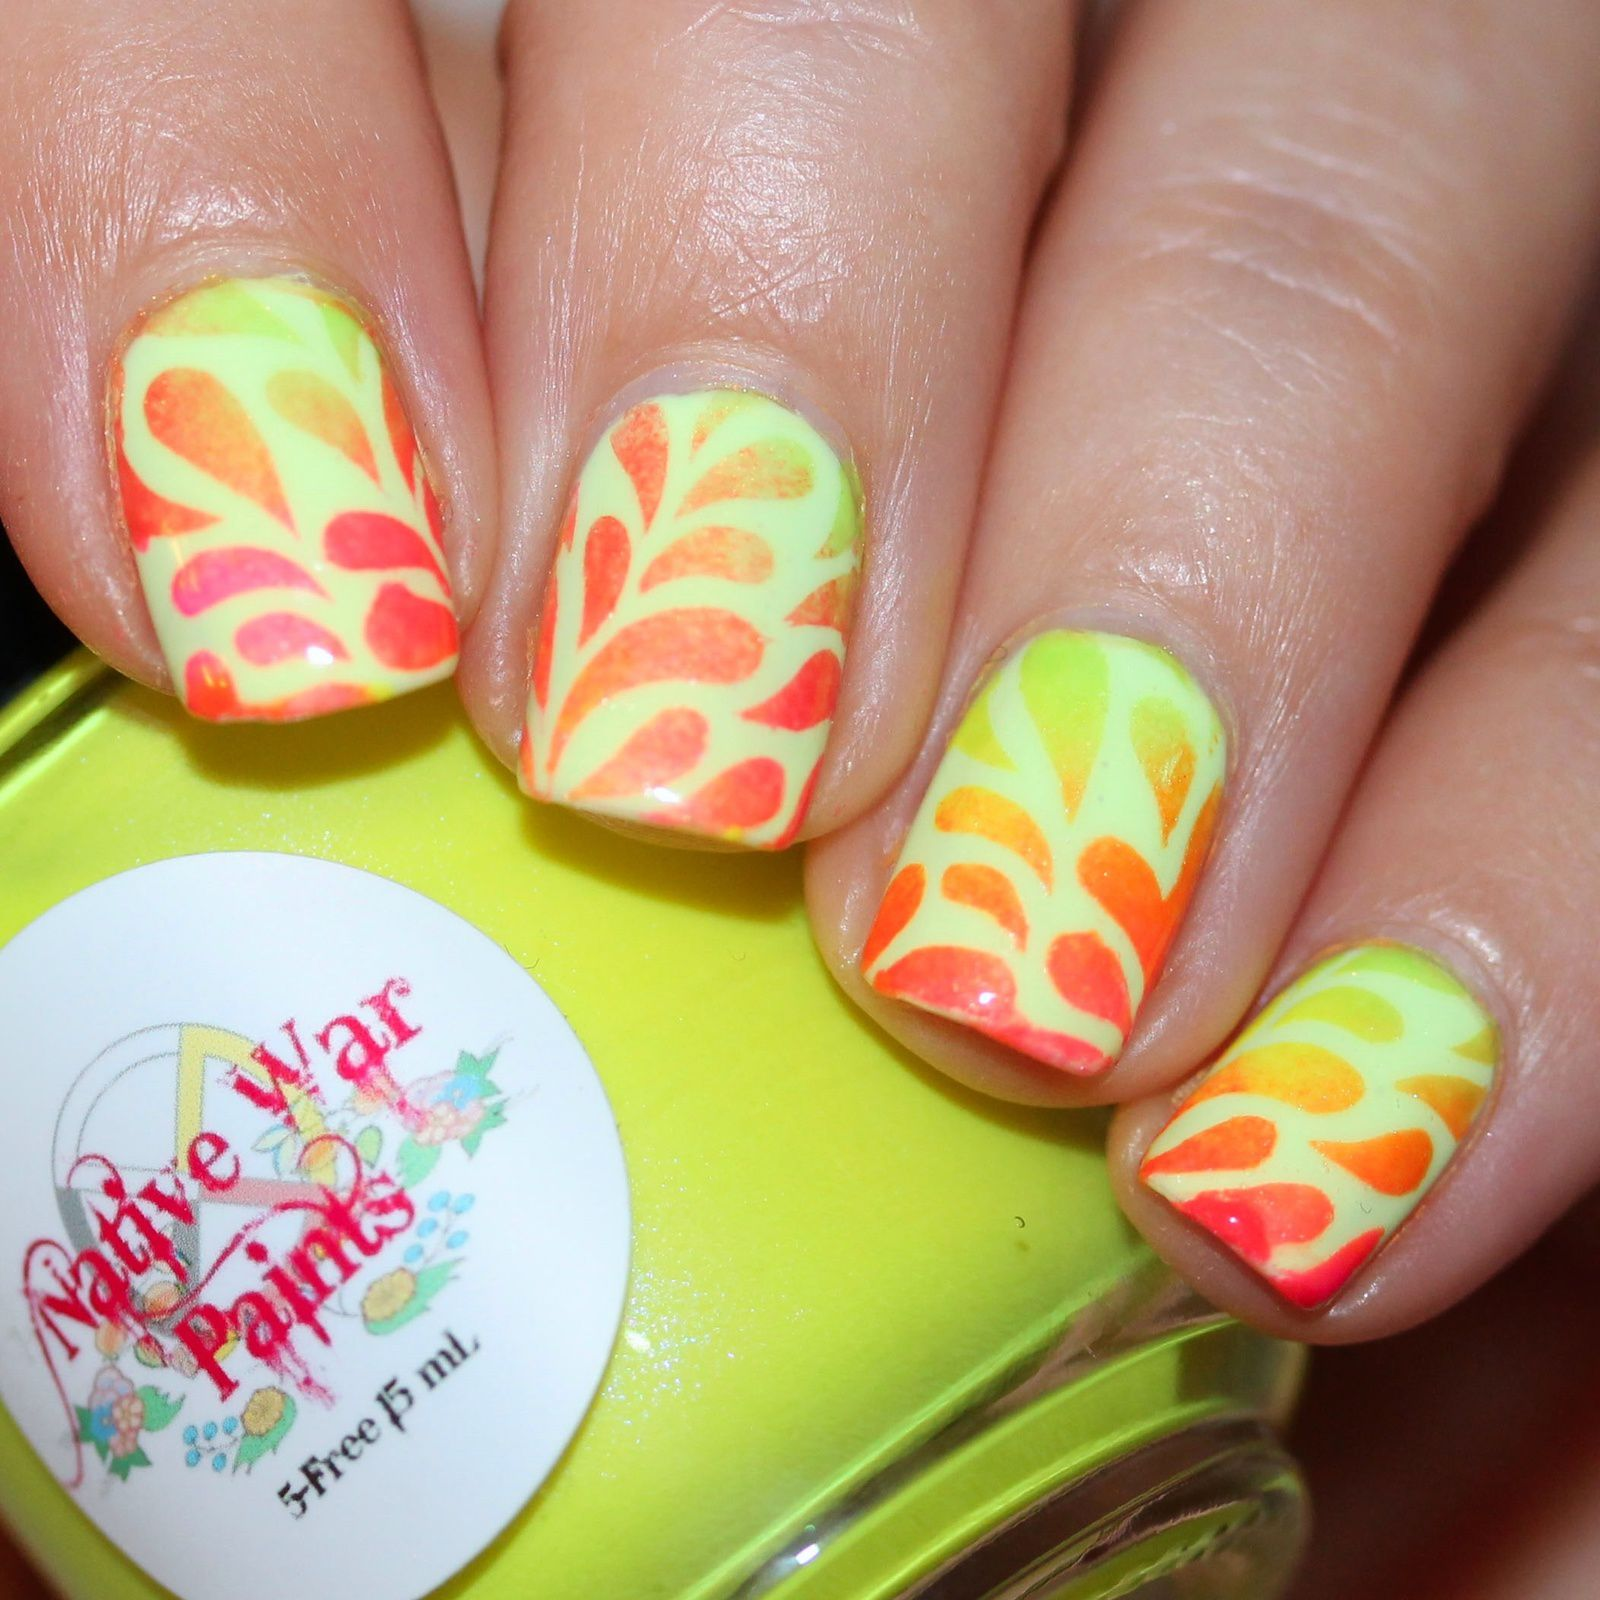 Duri Rejuvacote / Color Club Under The Backlight / Stick It Teardrop Nail Vinyls and sponge gradient with Native War Paints Uranium, Canary Yellow, Nuclear, Cropped Sweater, Watermelon Bubblegum &Tickled Pink / HK Girl Top Coat